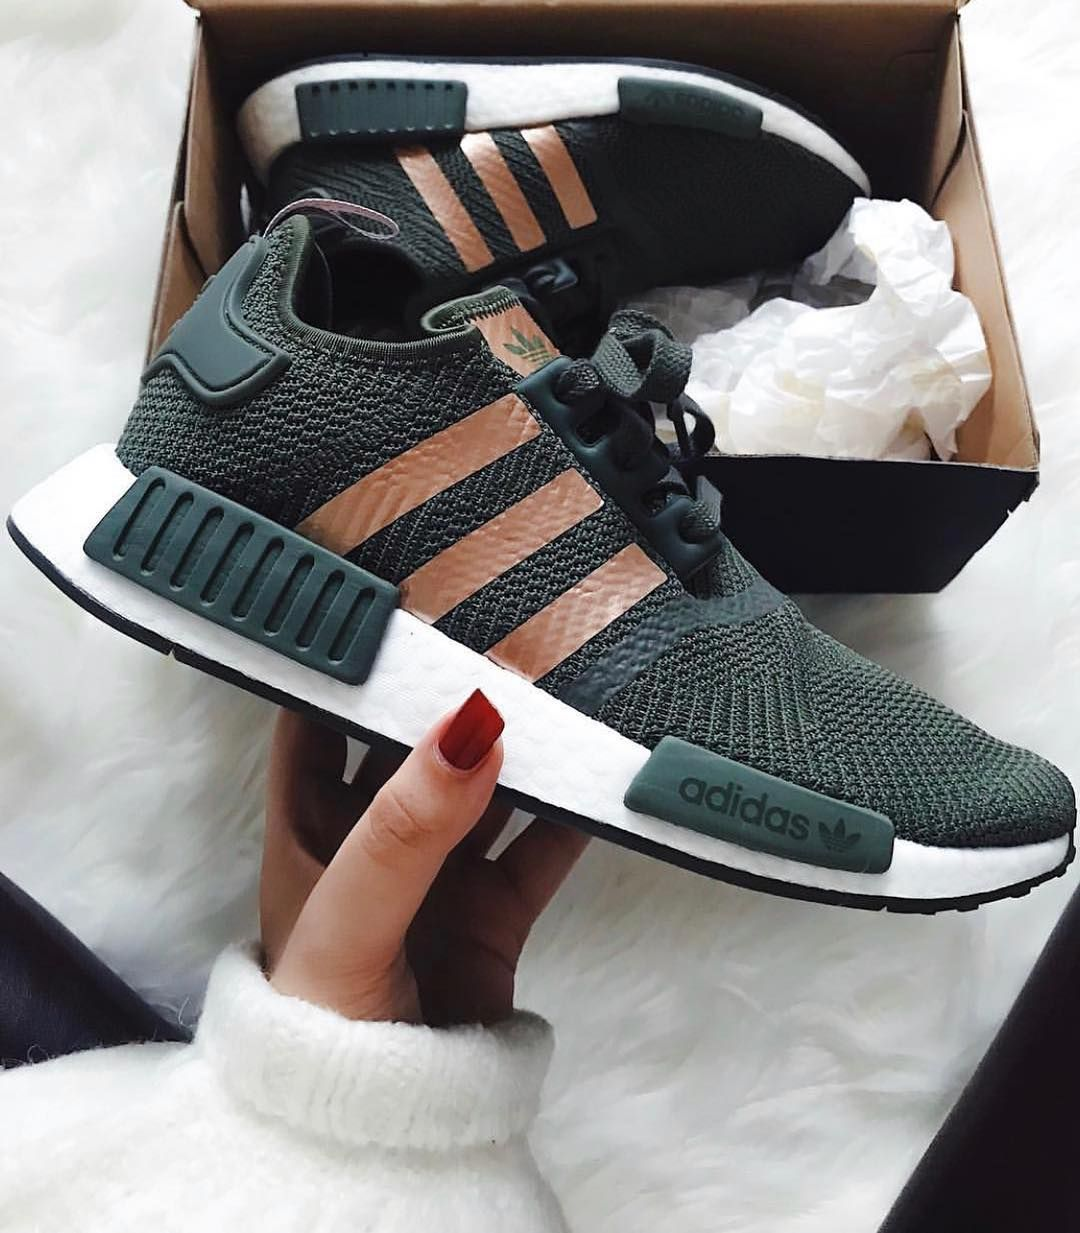 adidas News 2019 - adidas Voucher Codes in 2019 | Sneakers ...